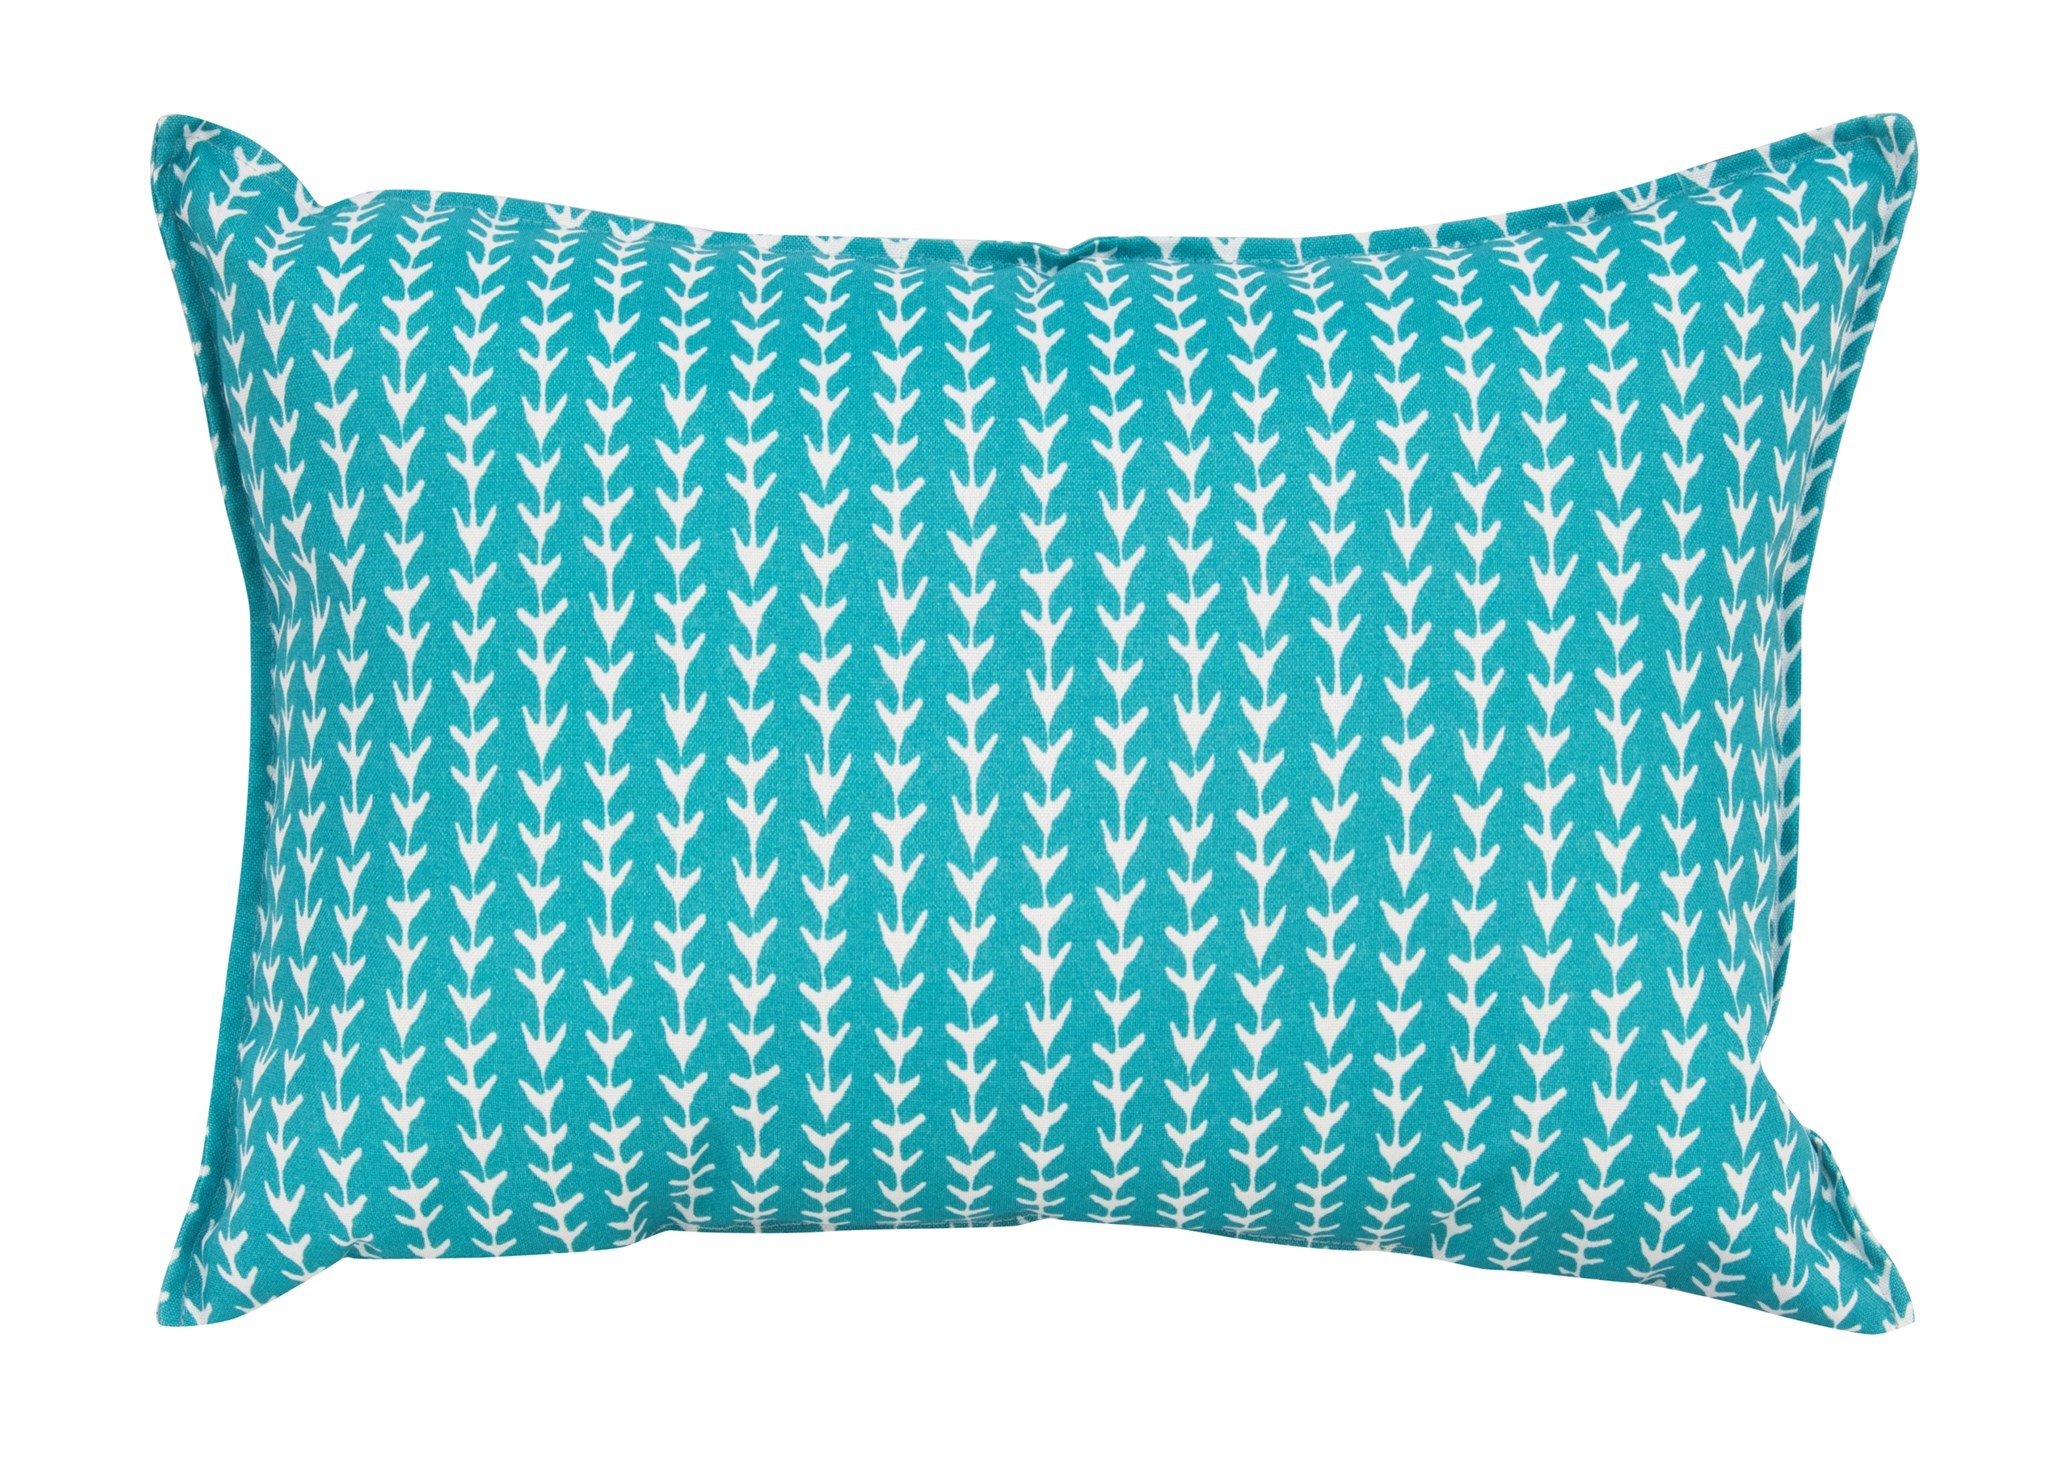 14x20* Outdoor Pillow by Ninety-Five & Co, Amanda's House Of Elegance  (Special Order Only - Minimum Qty 2)    ($33.95 each)    *Also available in 20x20